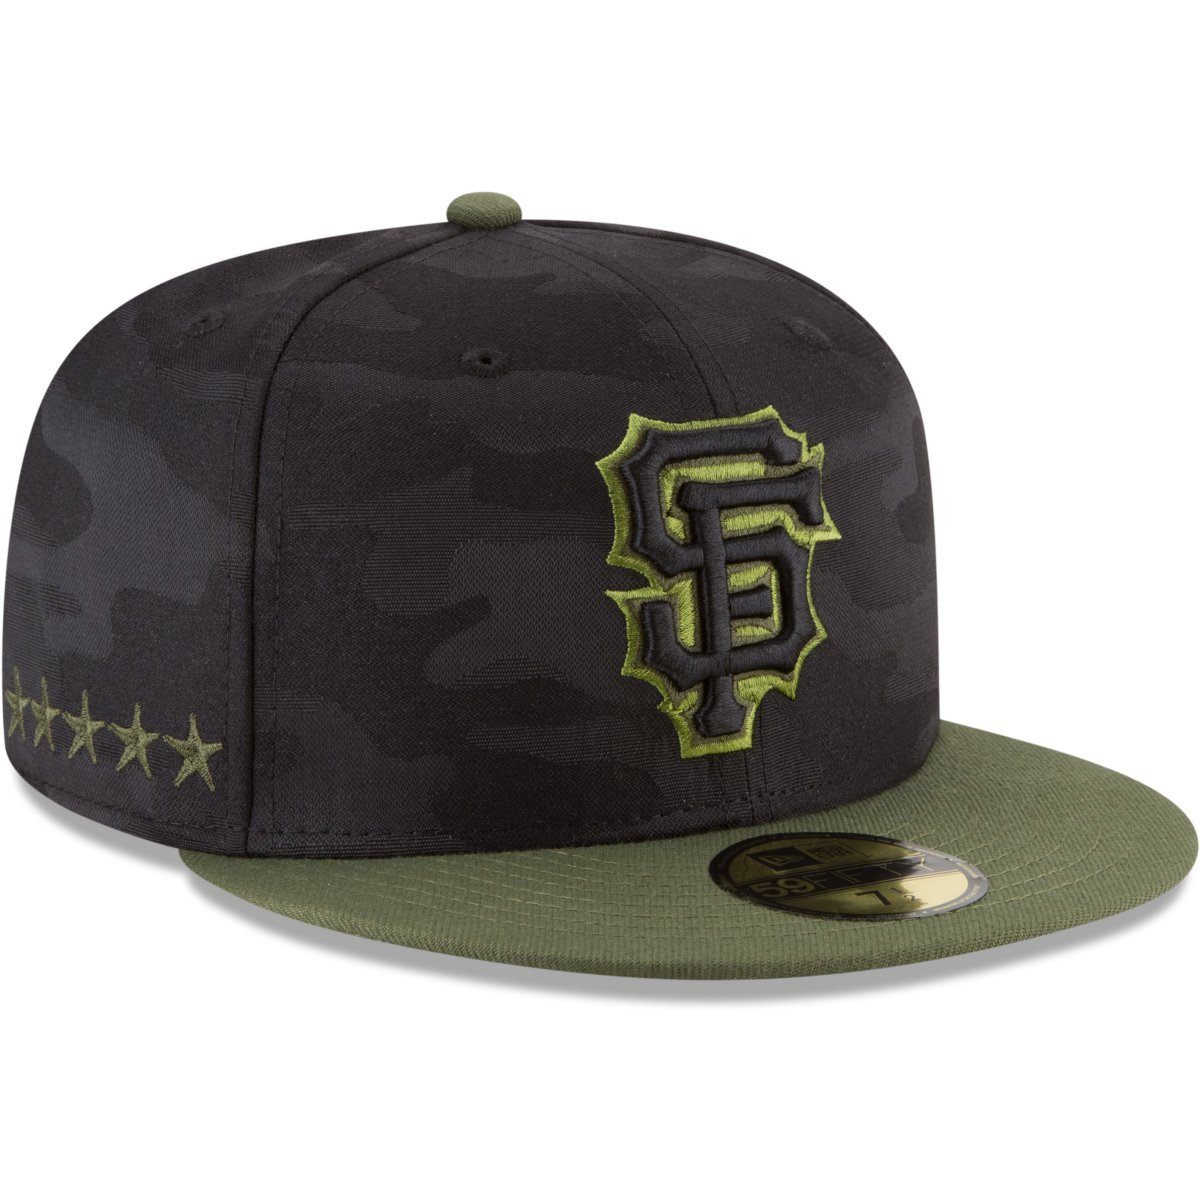 443e8a85db465 Amazon.com  New Era San Francisco Giants Memorial Day Fitted Cap 59fifty  Basecap Limited Special Edition  Clothing